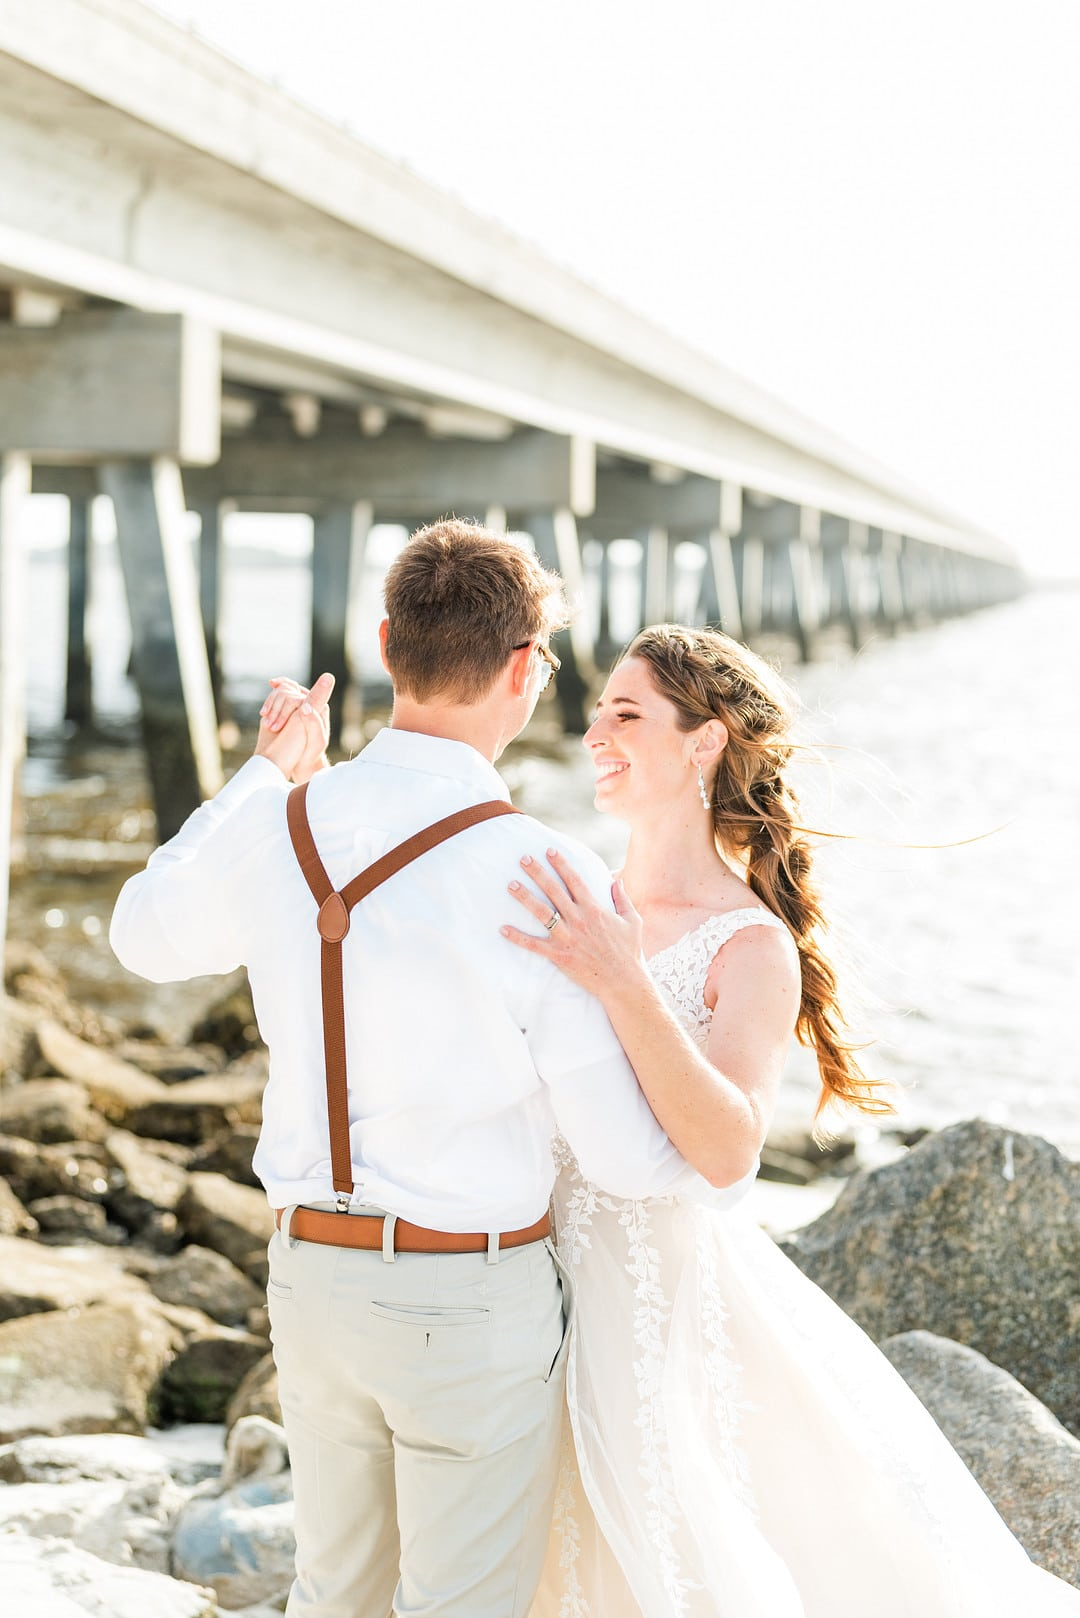 Romantic, Spring Styled Wedding with Horses on the Beach_Christine Austin Photography_©christineaustinphotography_2021_RomanticBeachStyledShoot_Austin+Naomi_72_low